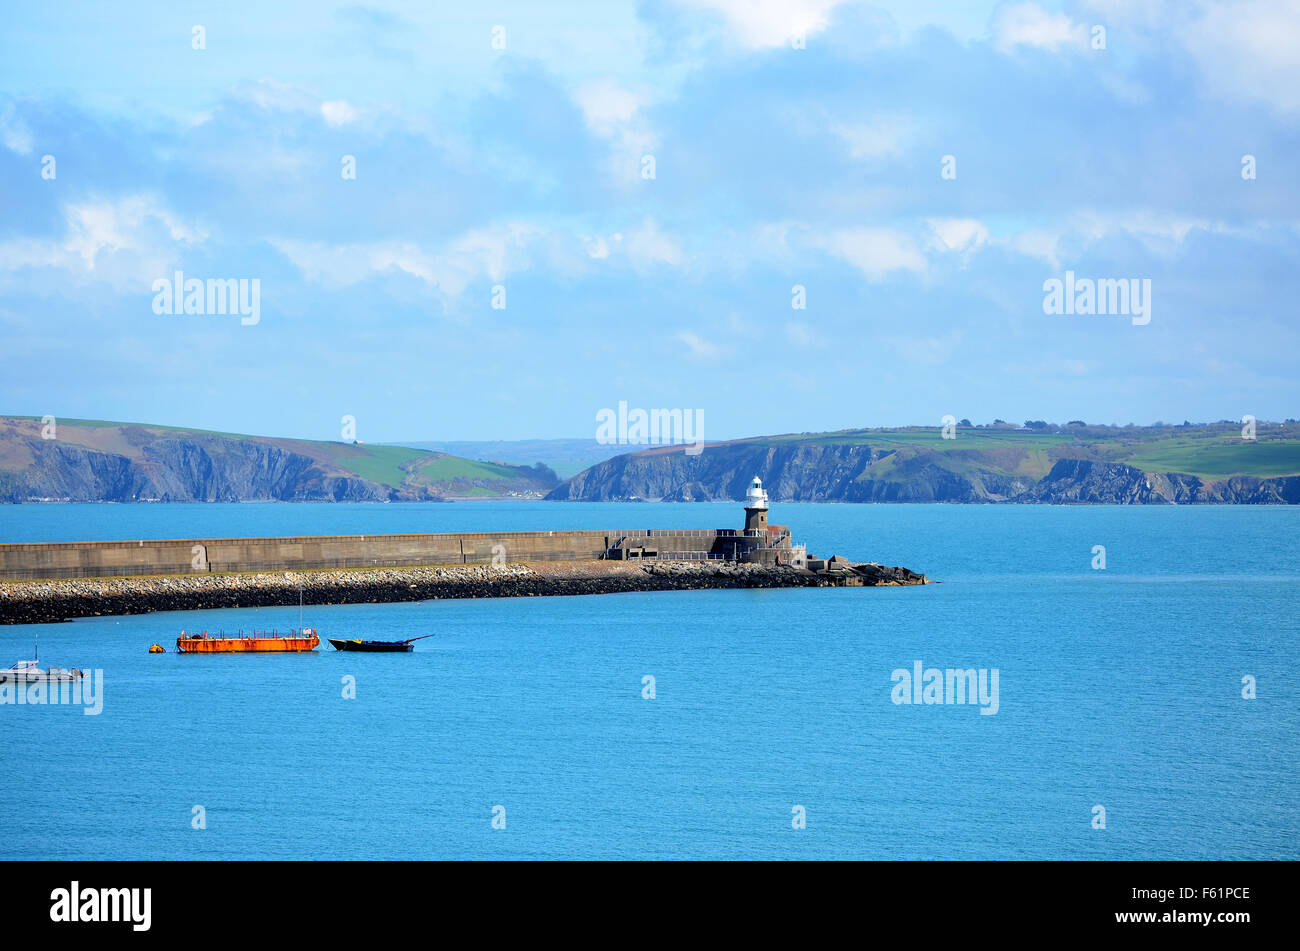 The Harbour wall at Fishguard, Pembrokeshire, South West Wales. - Stock Image